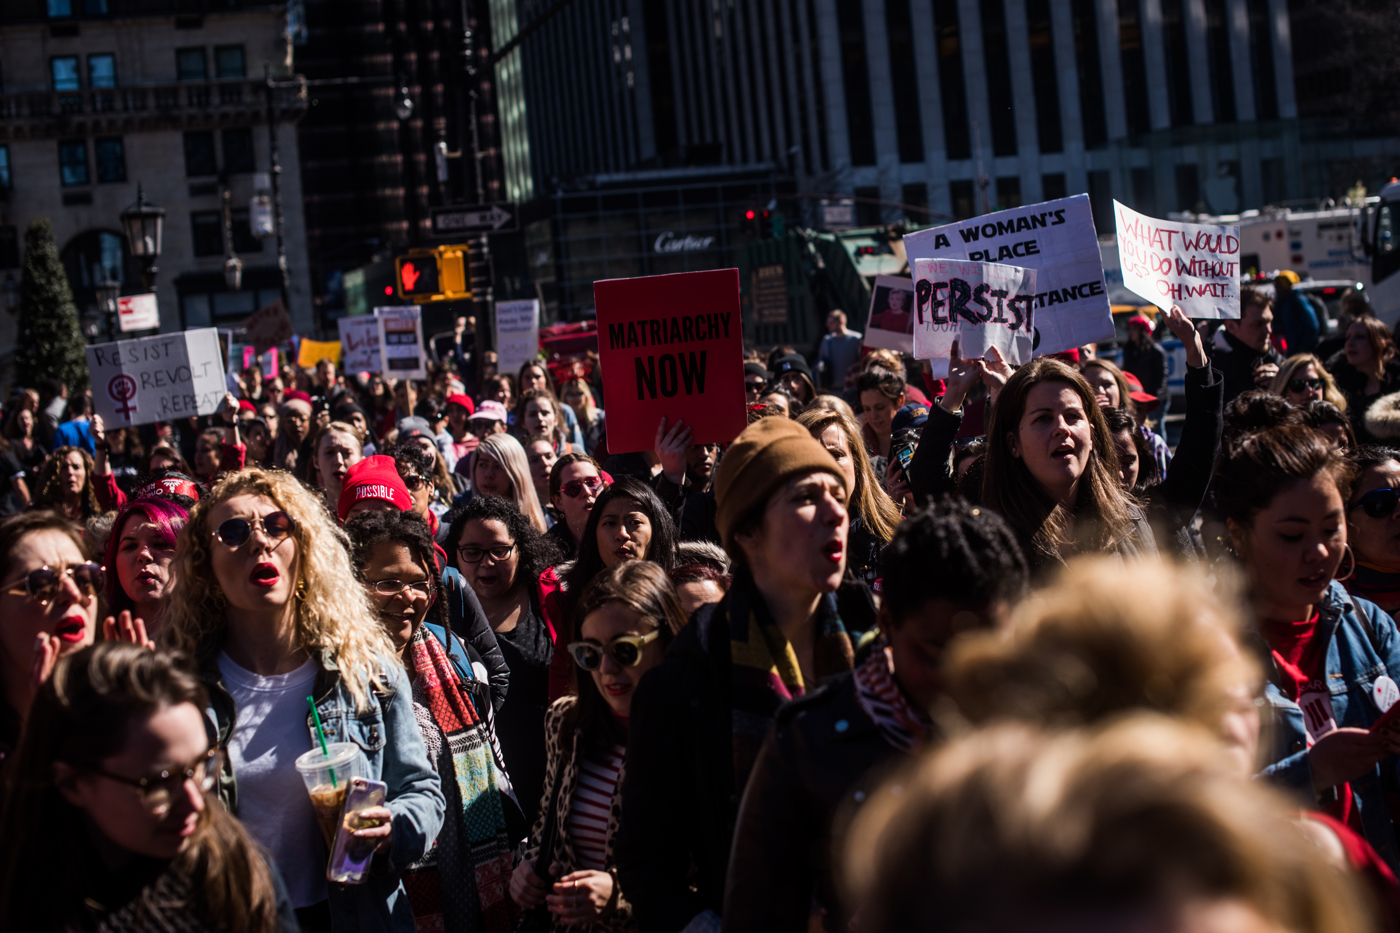 Demonstrators march along 59th Street during an International Women's Day rally and march in New York, NY on March 8, 2017. CREDIT: Mark Kauzlarich for CNN